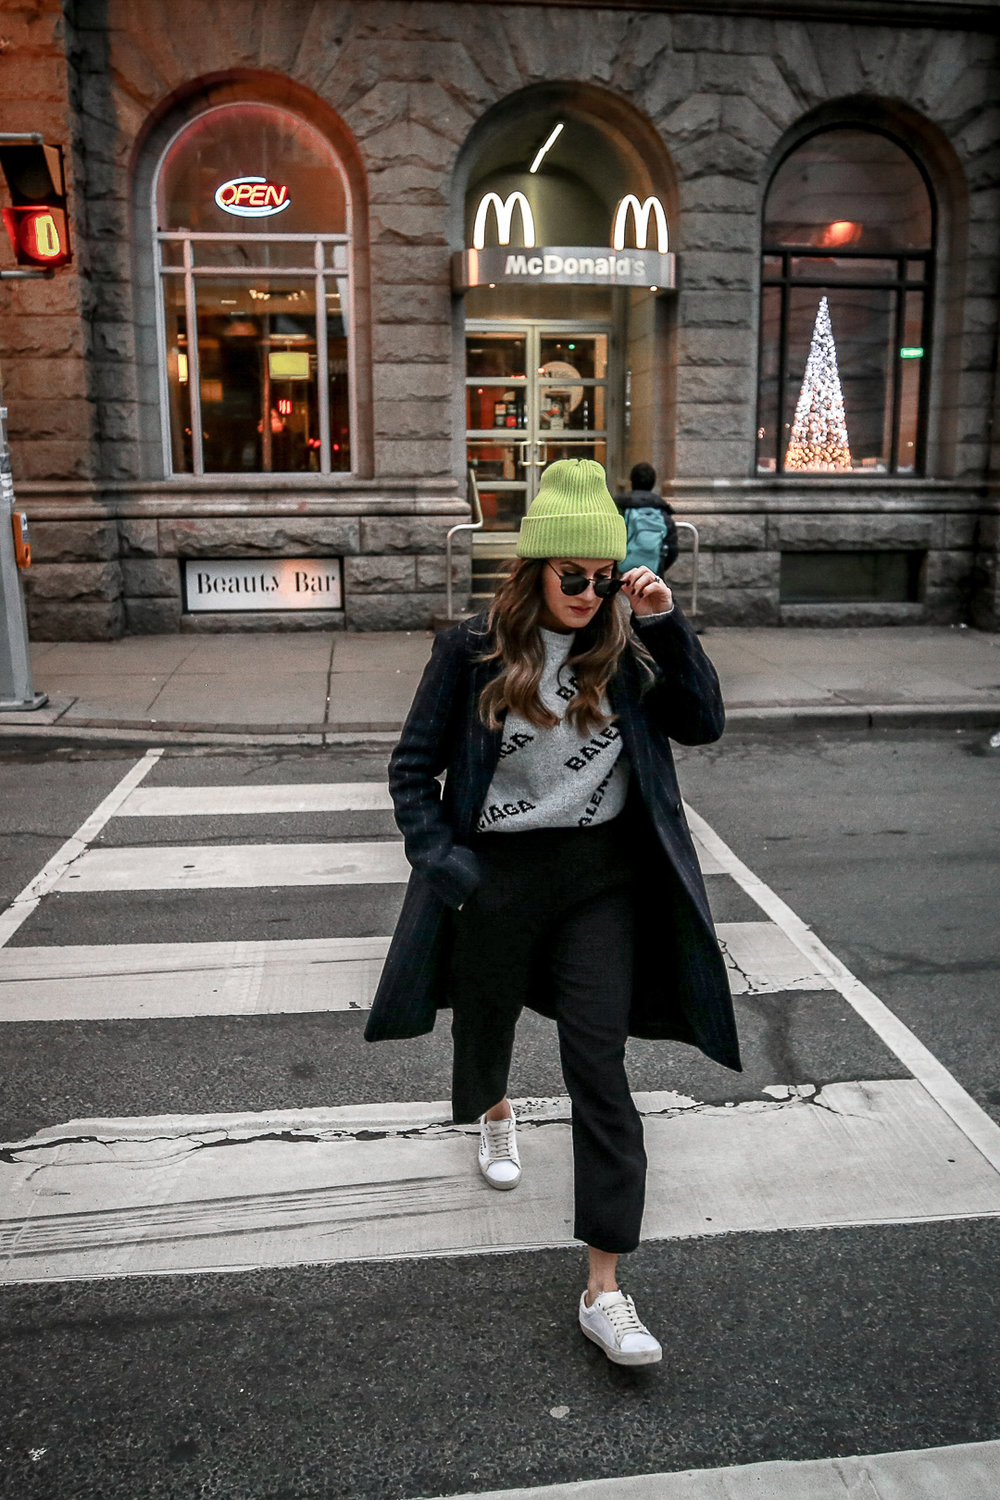 Nathalie Martin wearing Balenciaga cropped logo sweater, Aritzia black Jallade pant, Saint Laurent white canvas court sneakers, Aritzia navy pinstripe Stedman coat, neon green beanie, Bonlook Way sunglasses, street style, woahstyle.com_3907.jpg